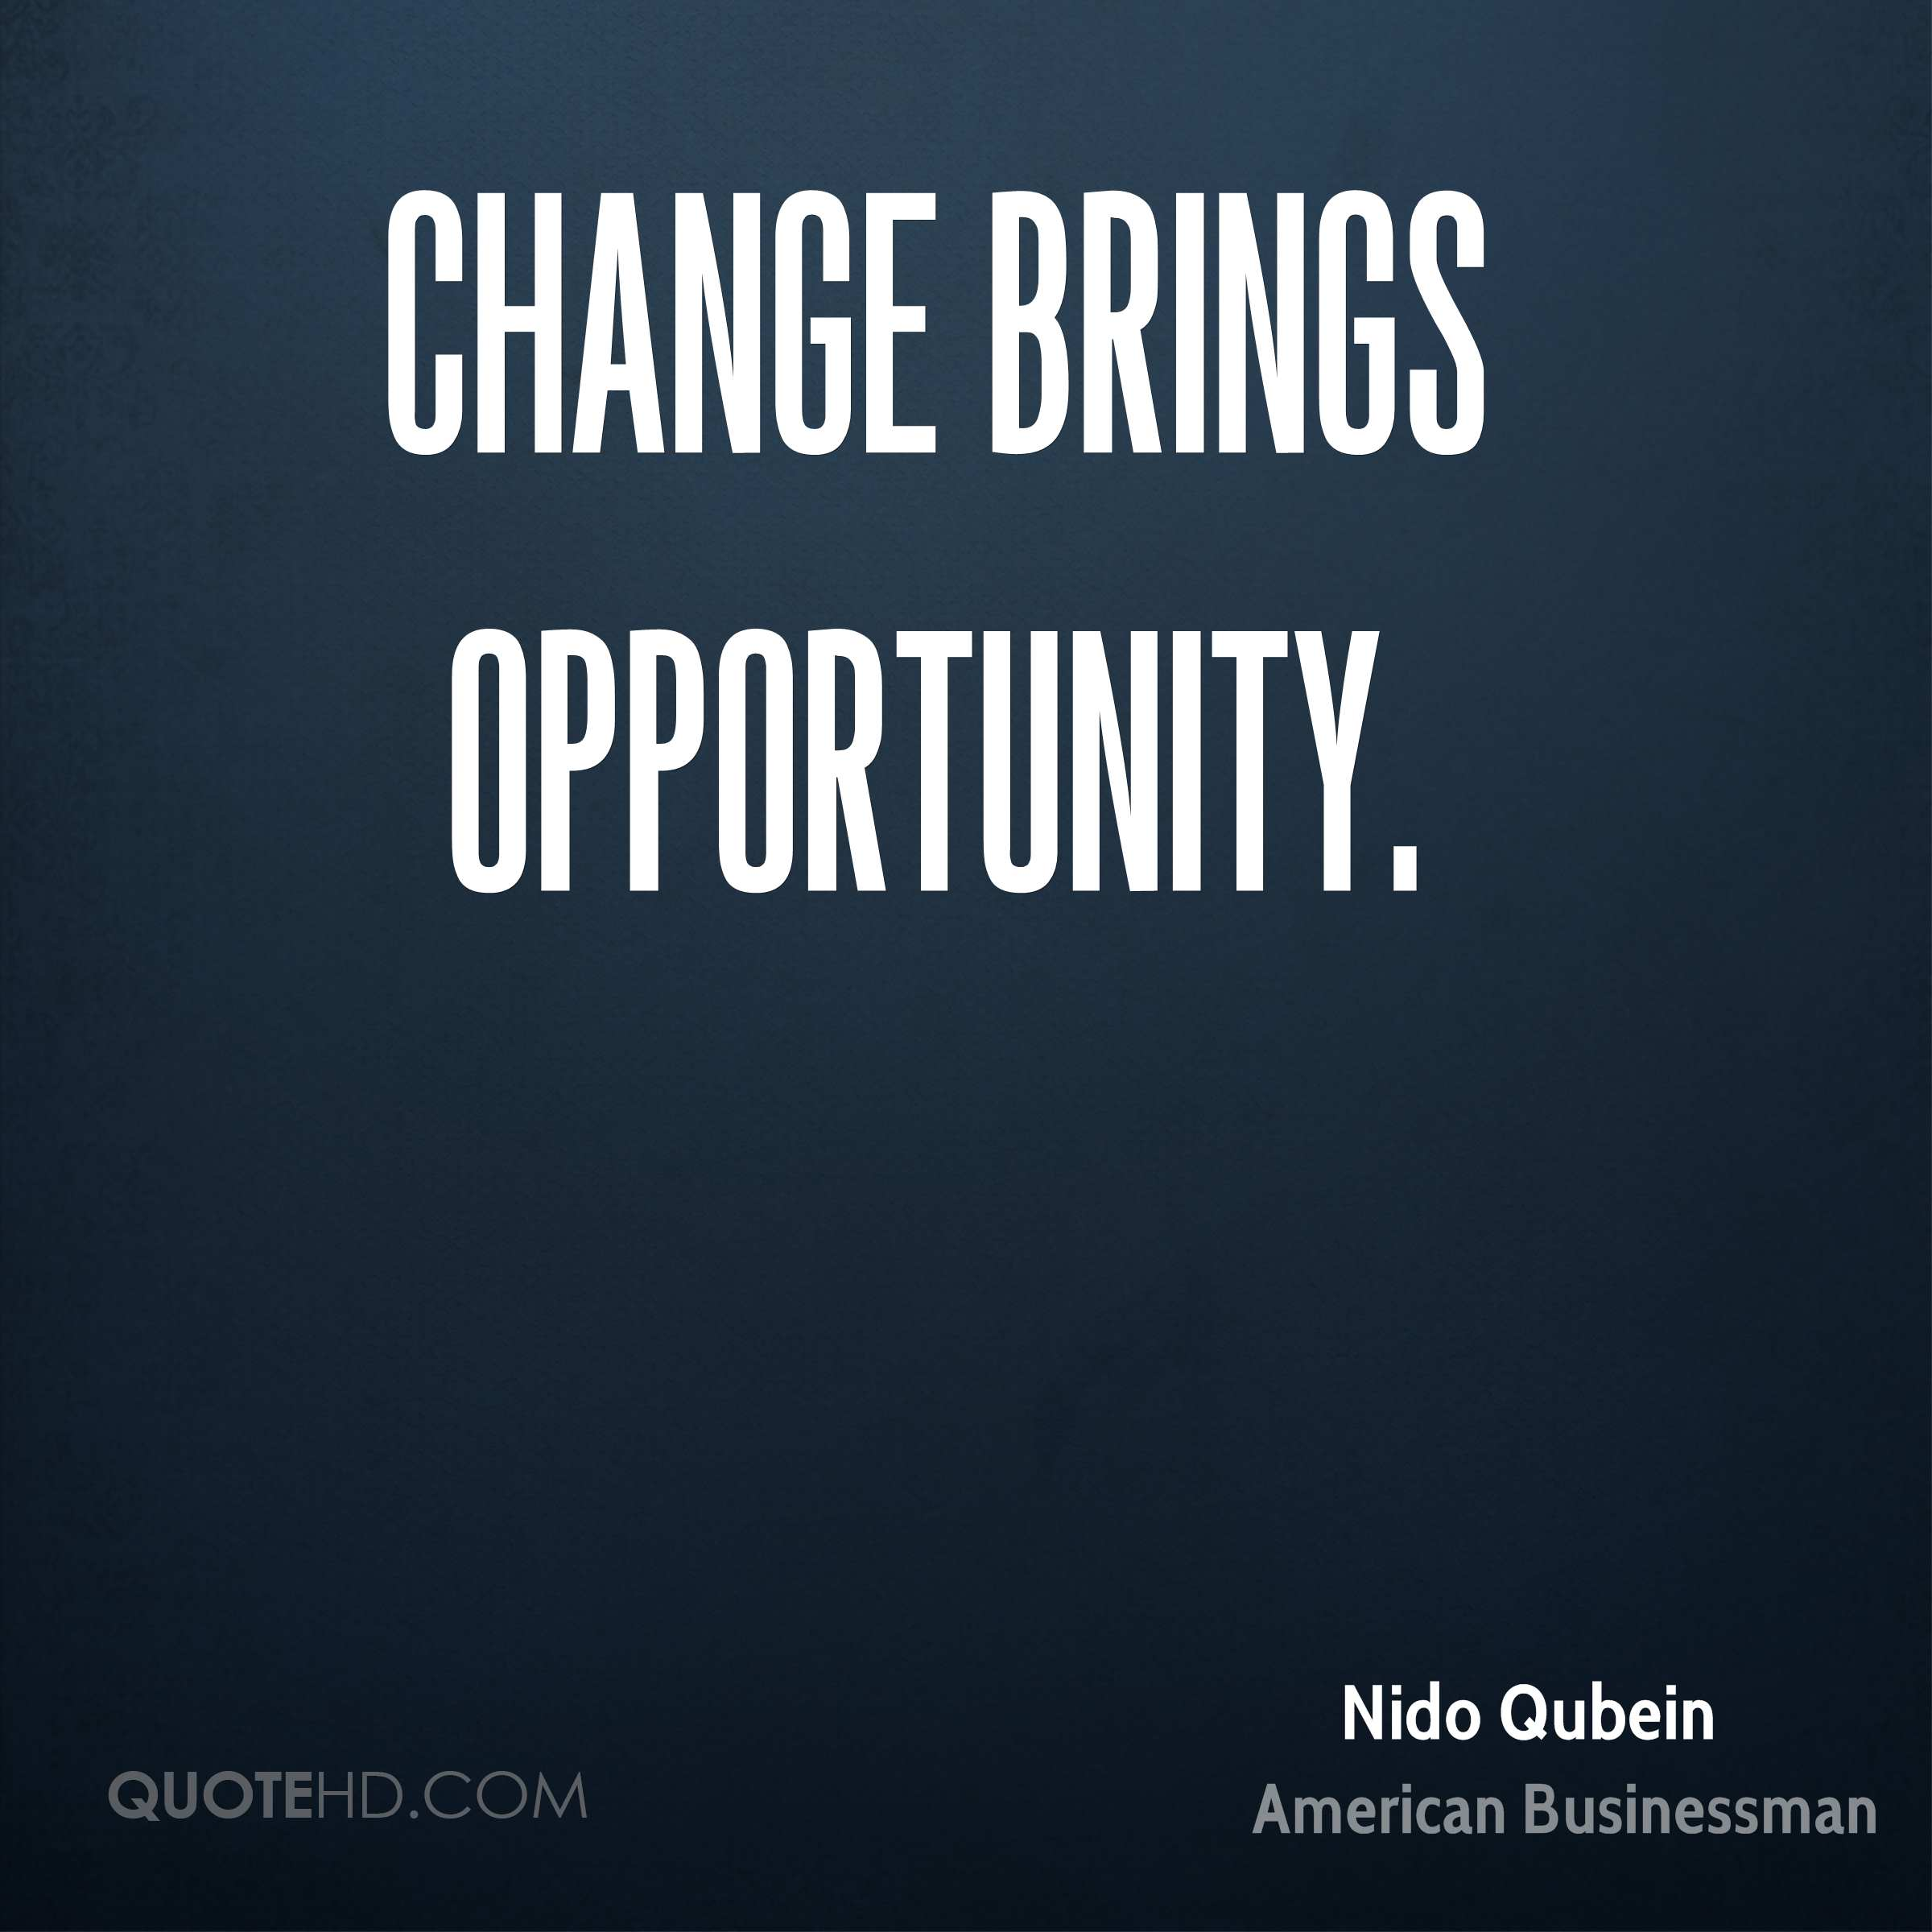 Quotes On Change Nido Qubein Change Quotes  Quotehd